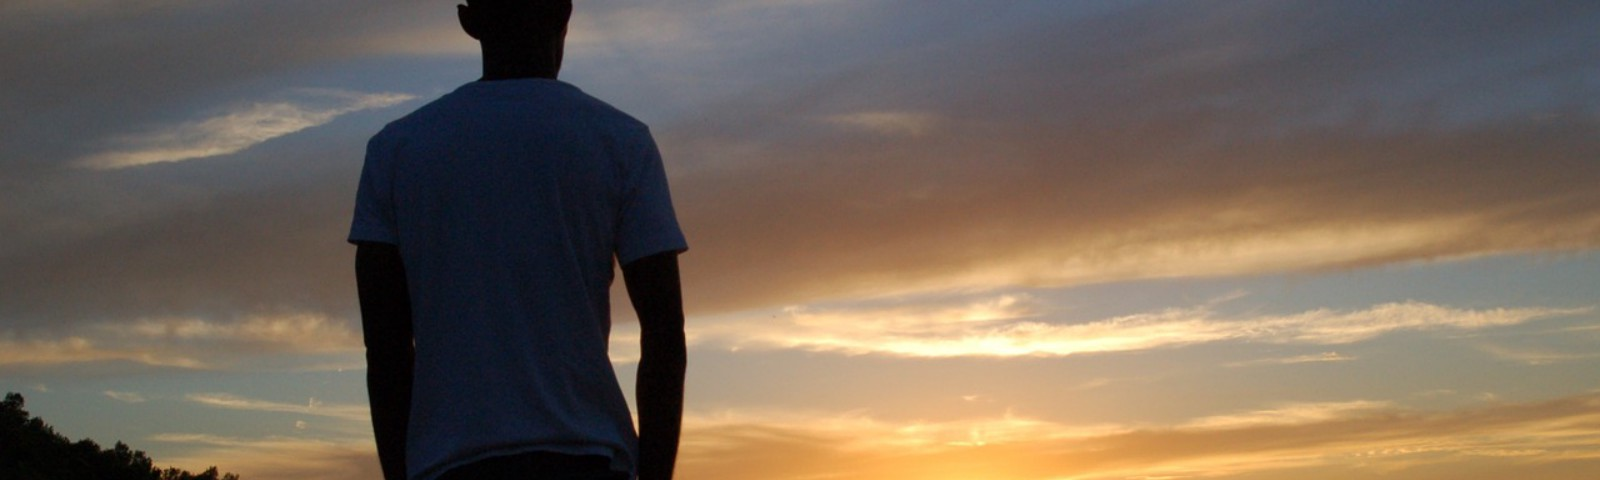 Man standing alone in sunset